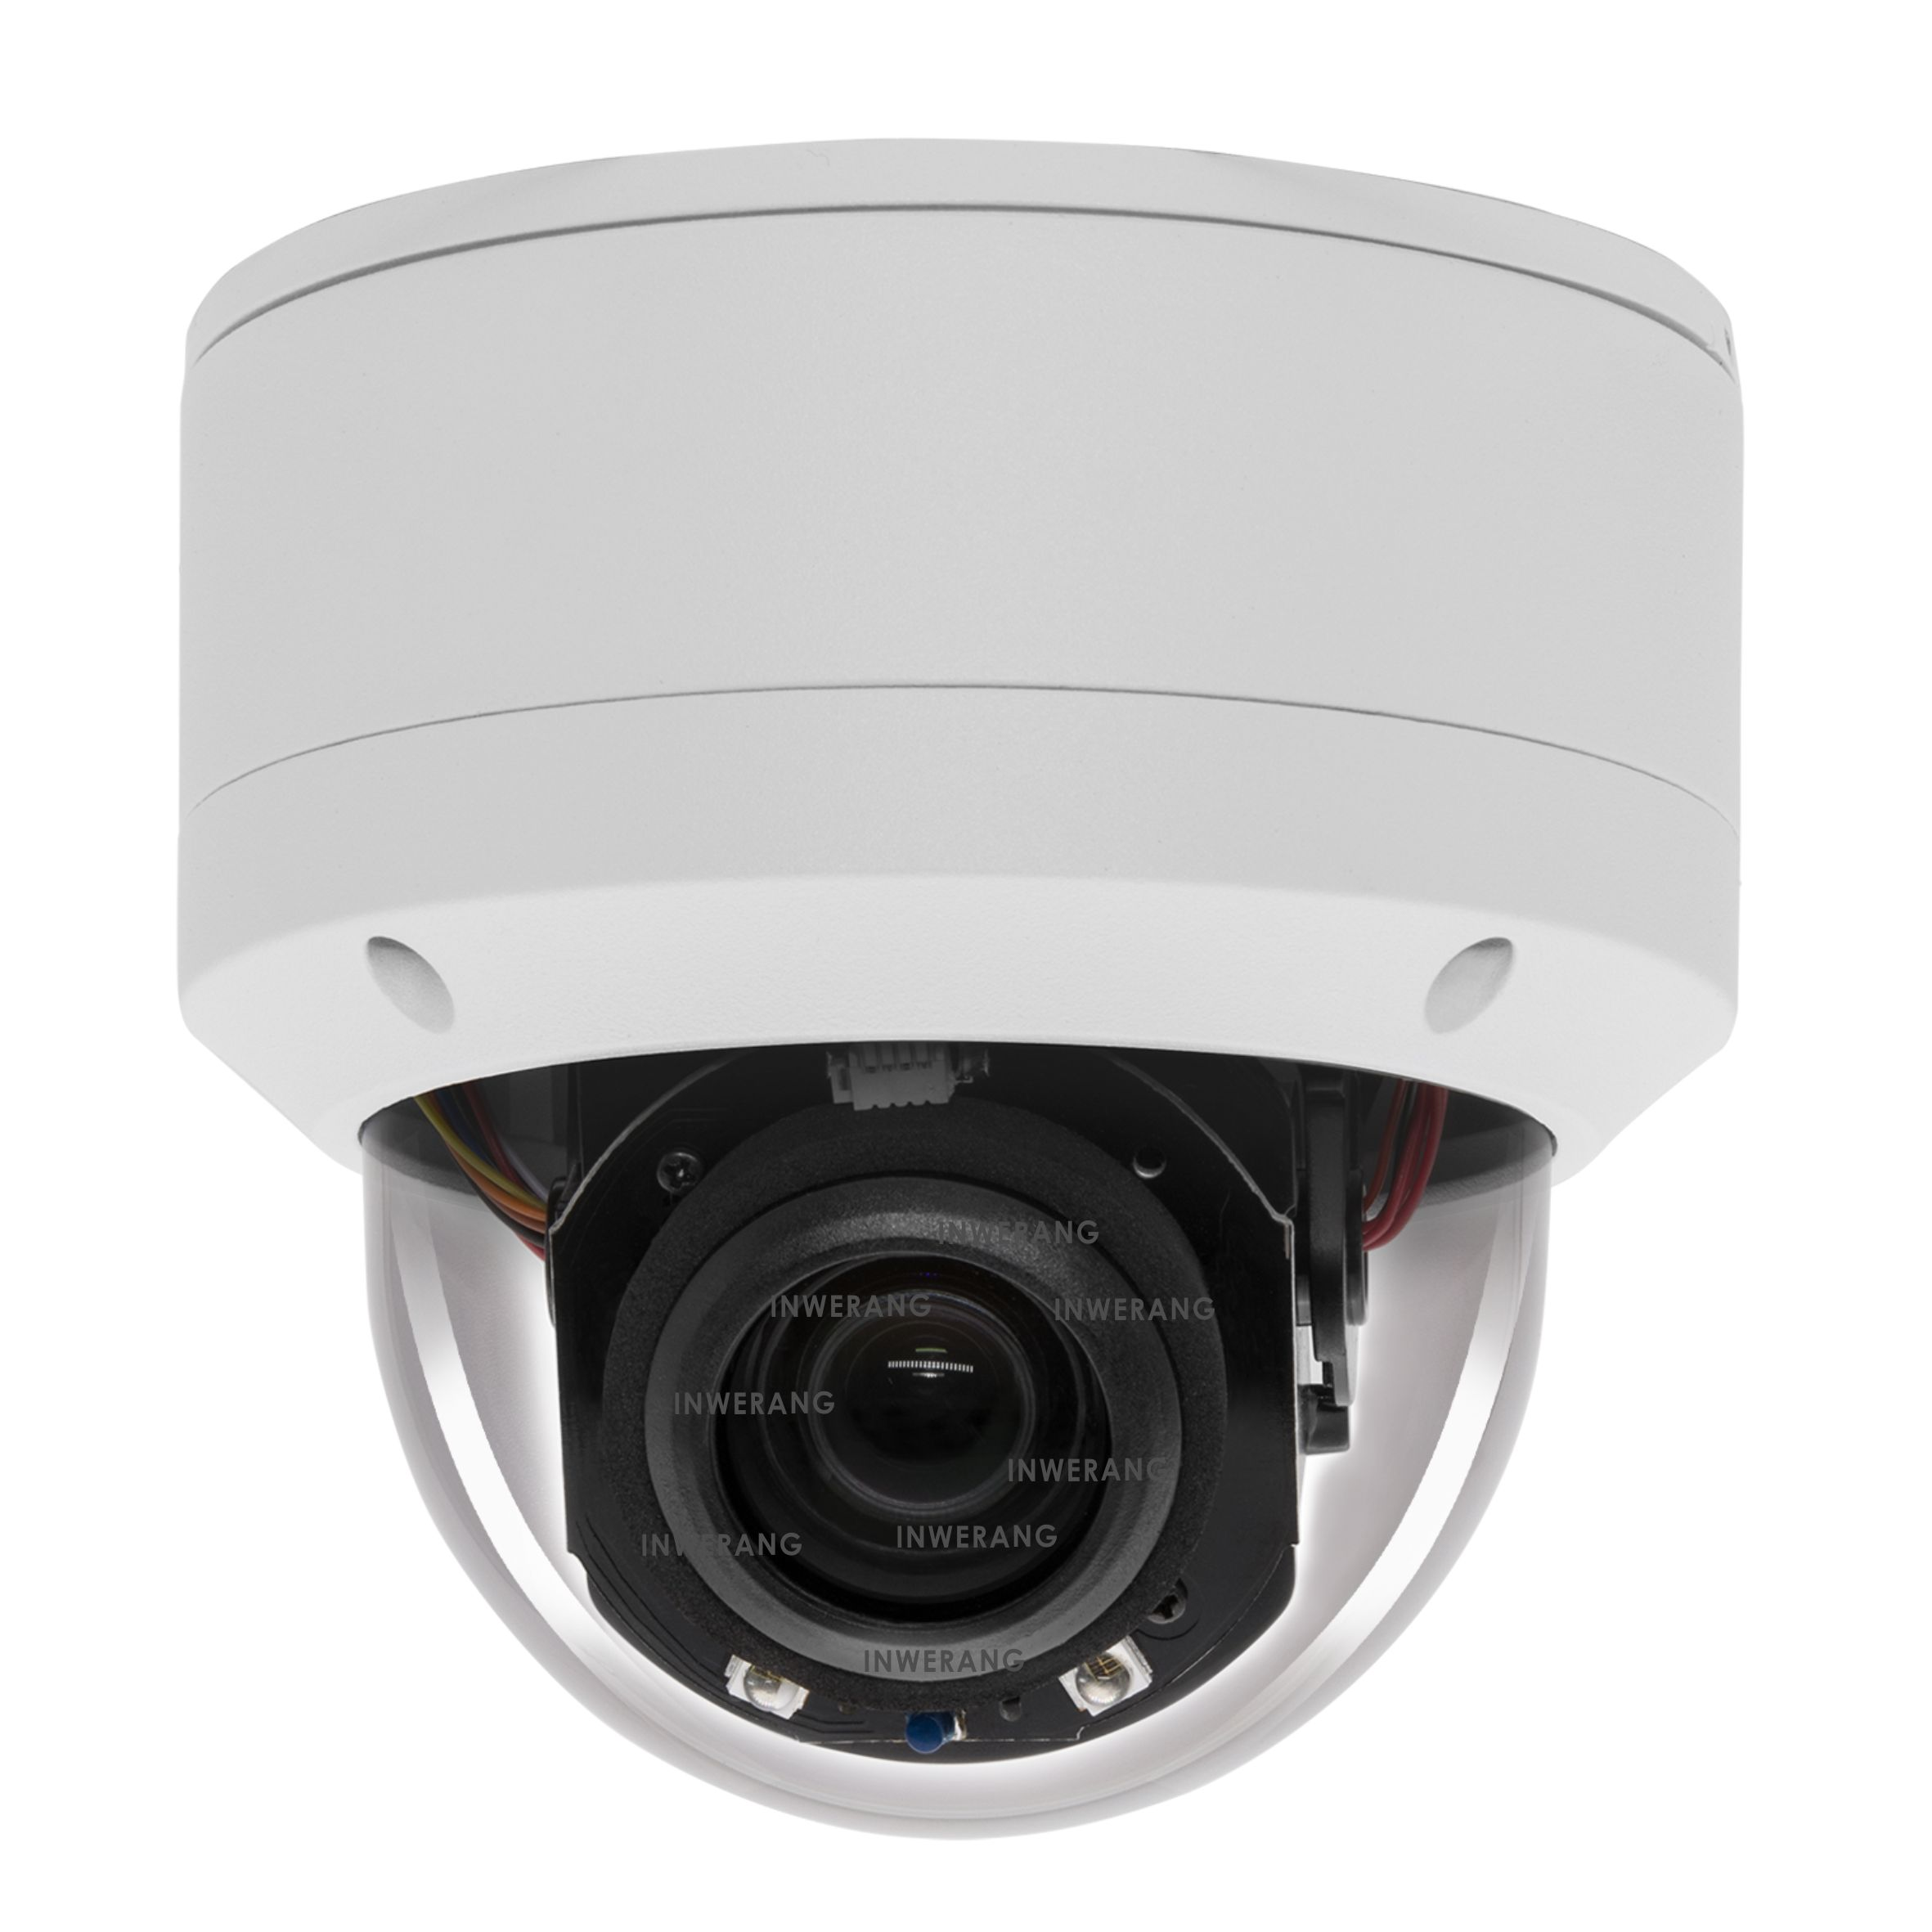 Security 5.0MP H.265 POE IP PTZ Camera, Audio in,Hikvision Compatible, 2.7-13.5mm AF Lens,IP66 Outdoor Vandalproof 98ft IR,Onvif image